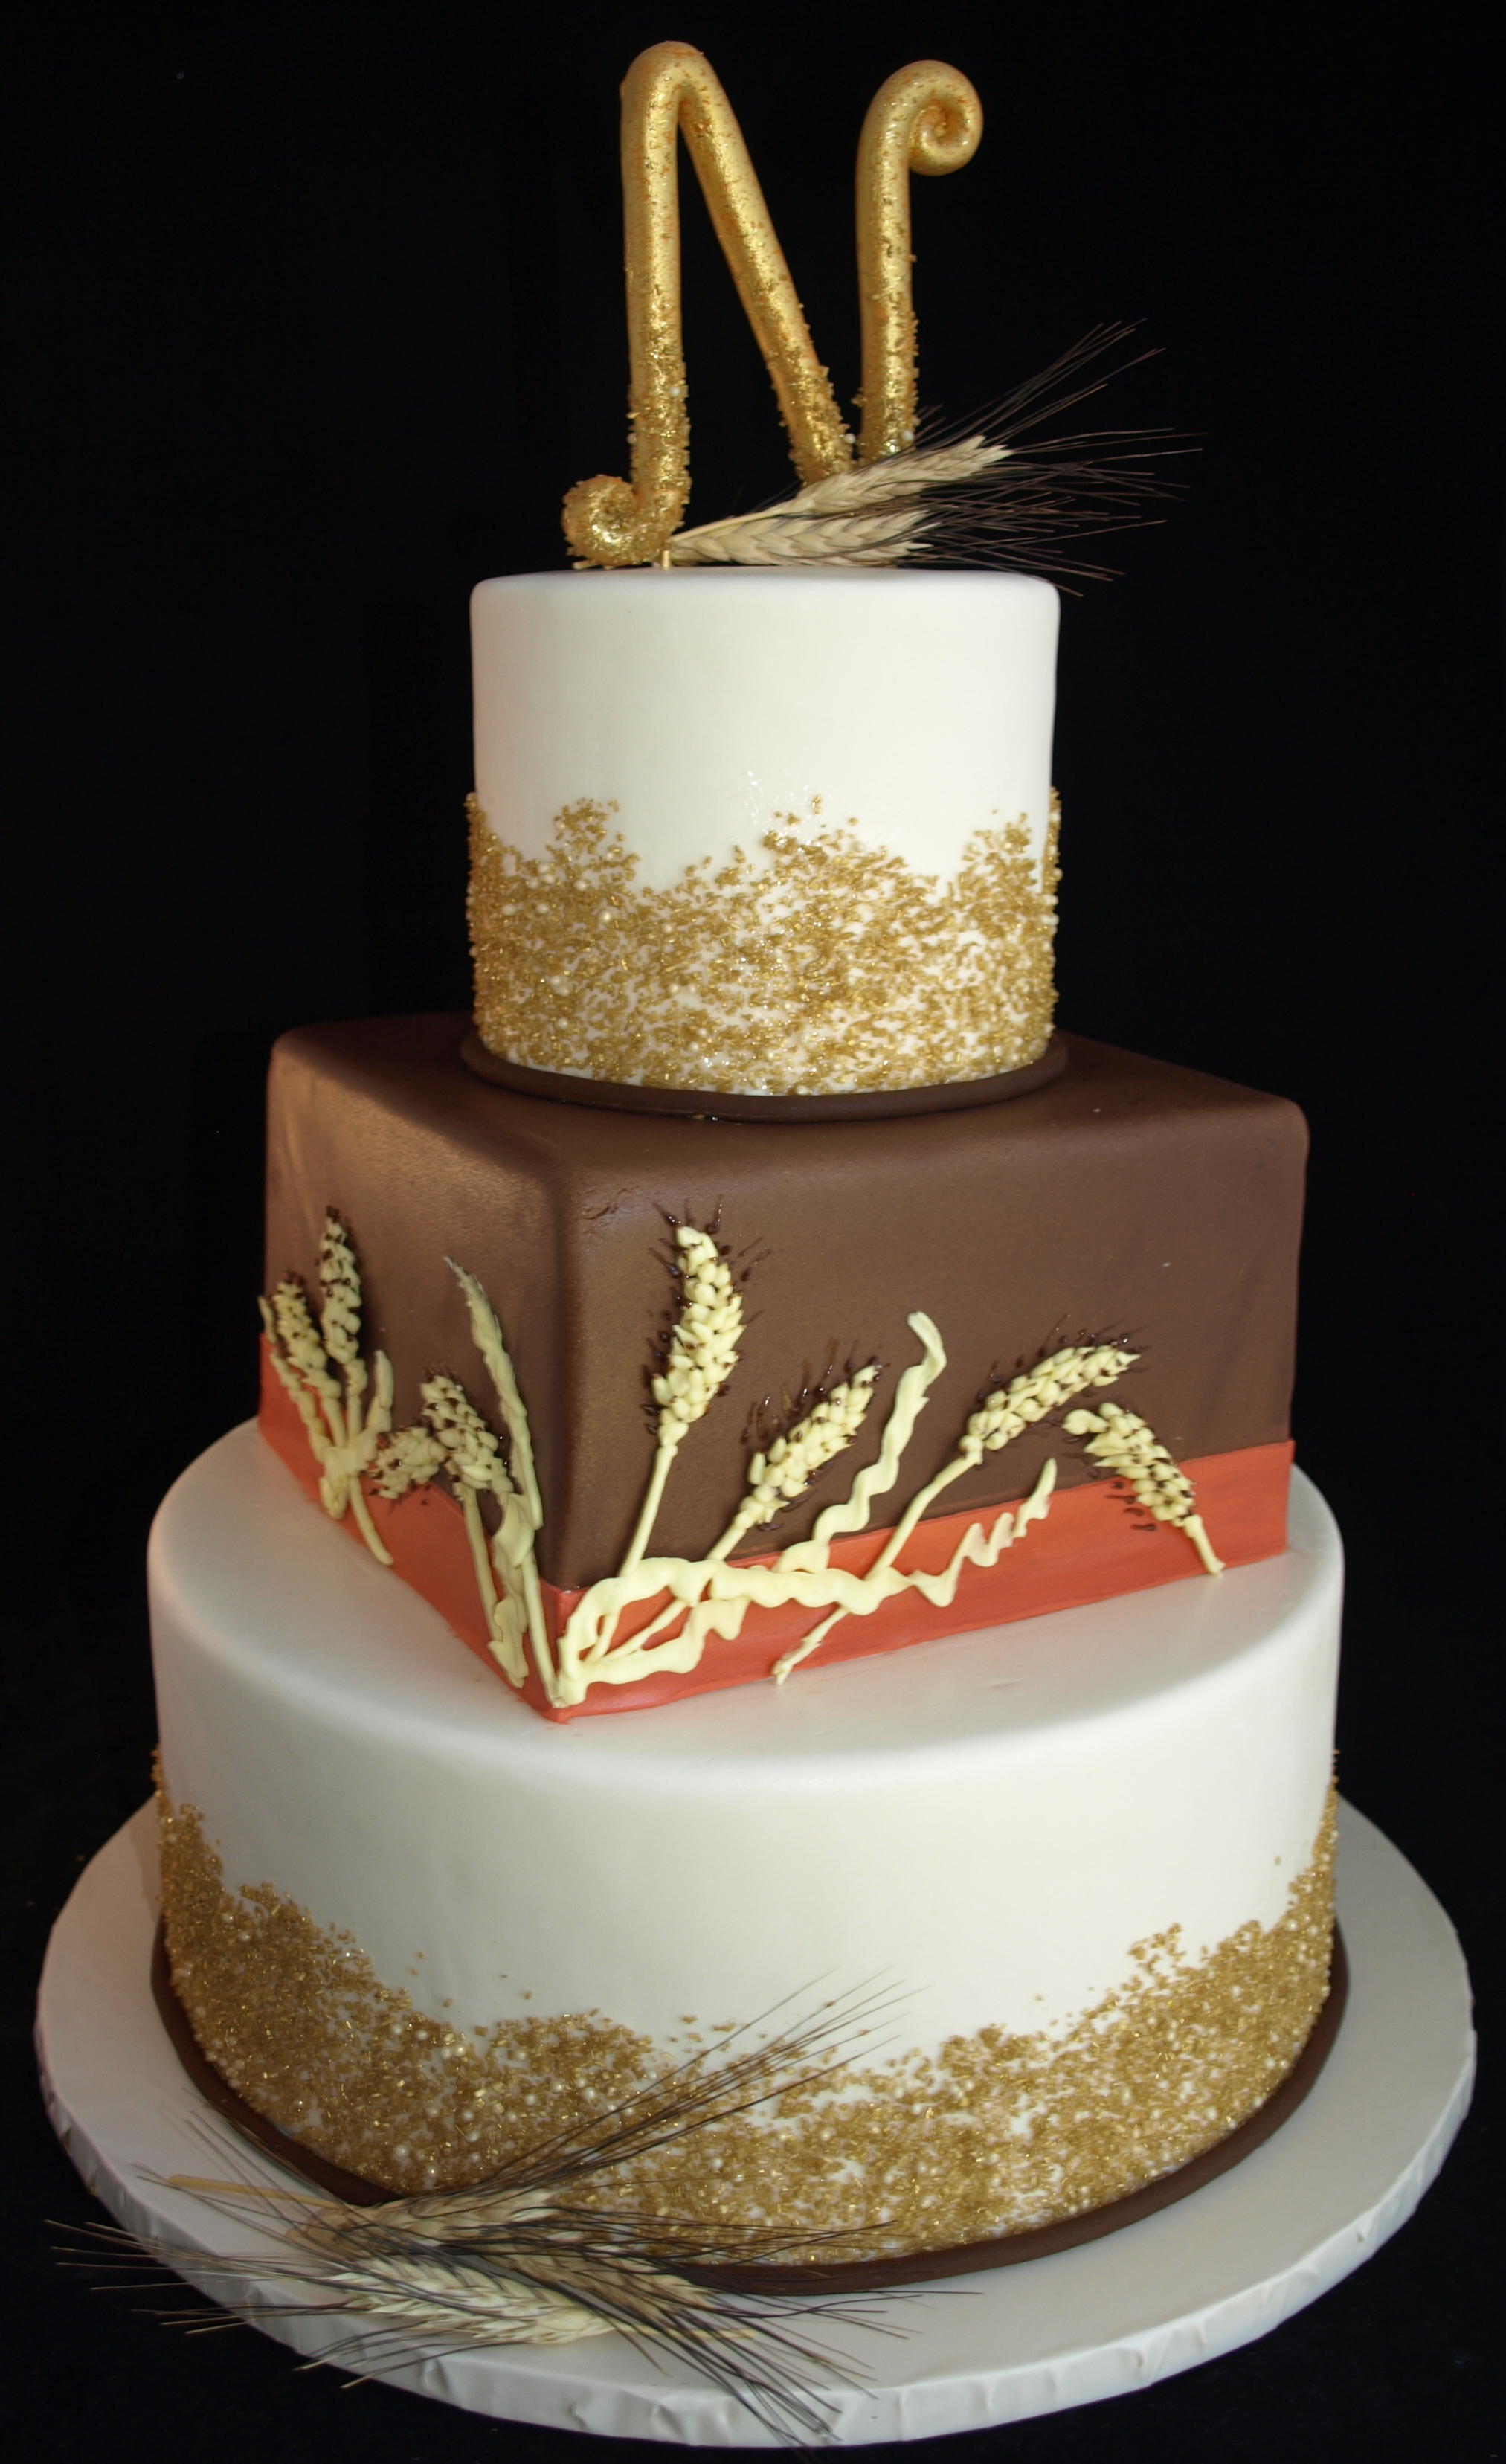 Fall Wedding Cake, Brown Orange Gold Fondant Wedding Cake, Monogram Cake topper